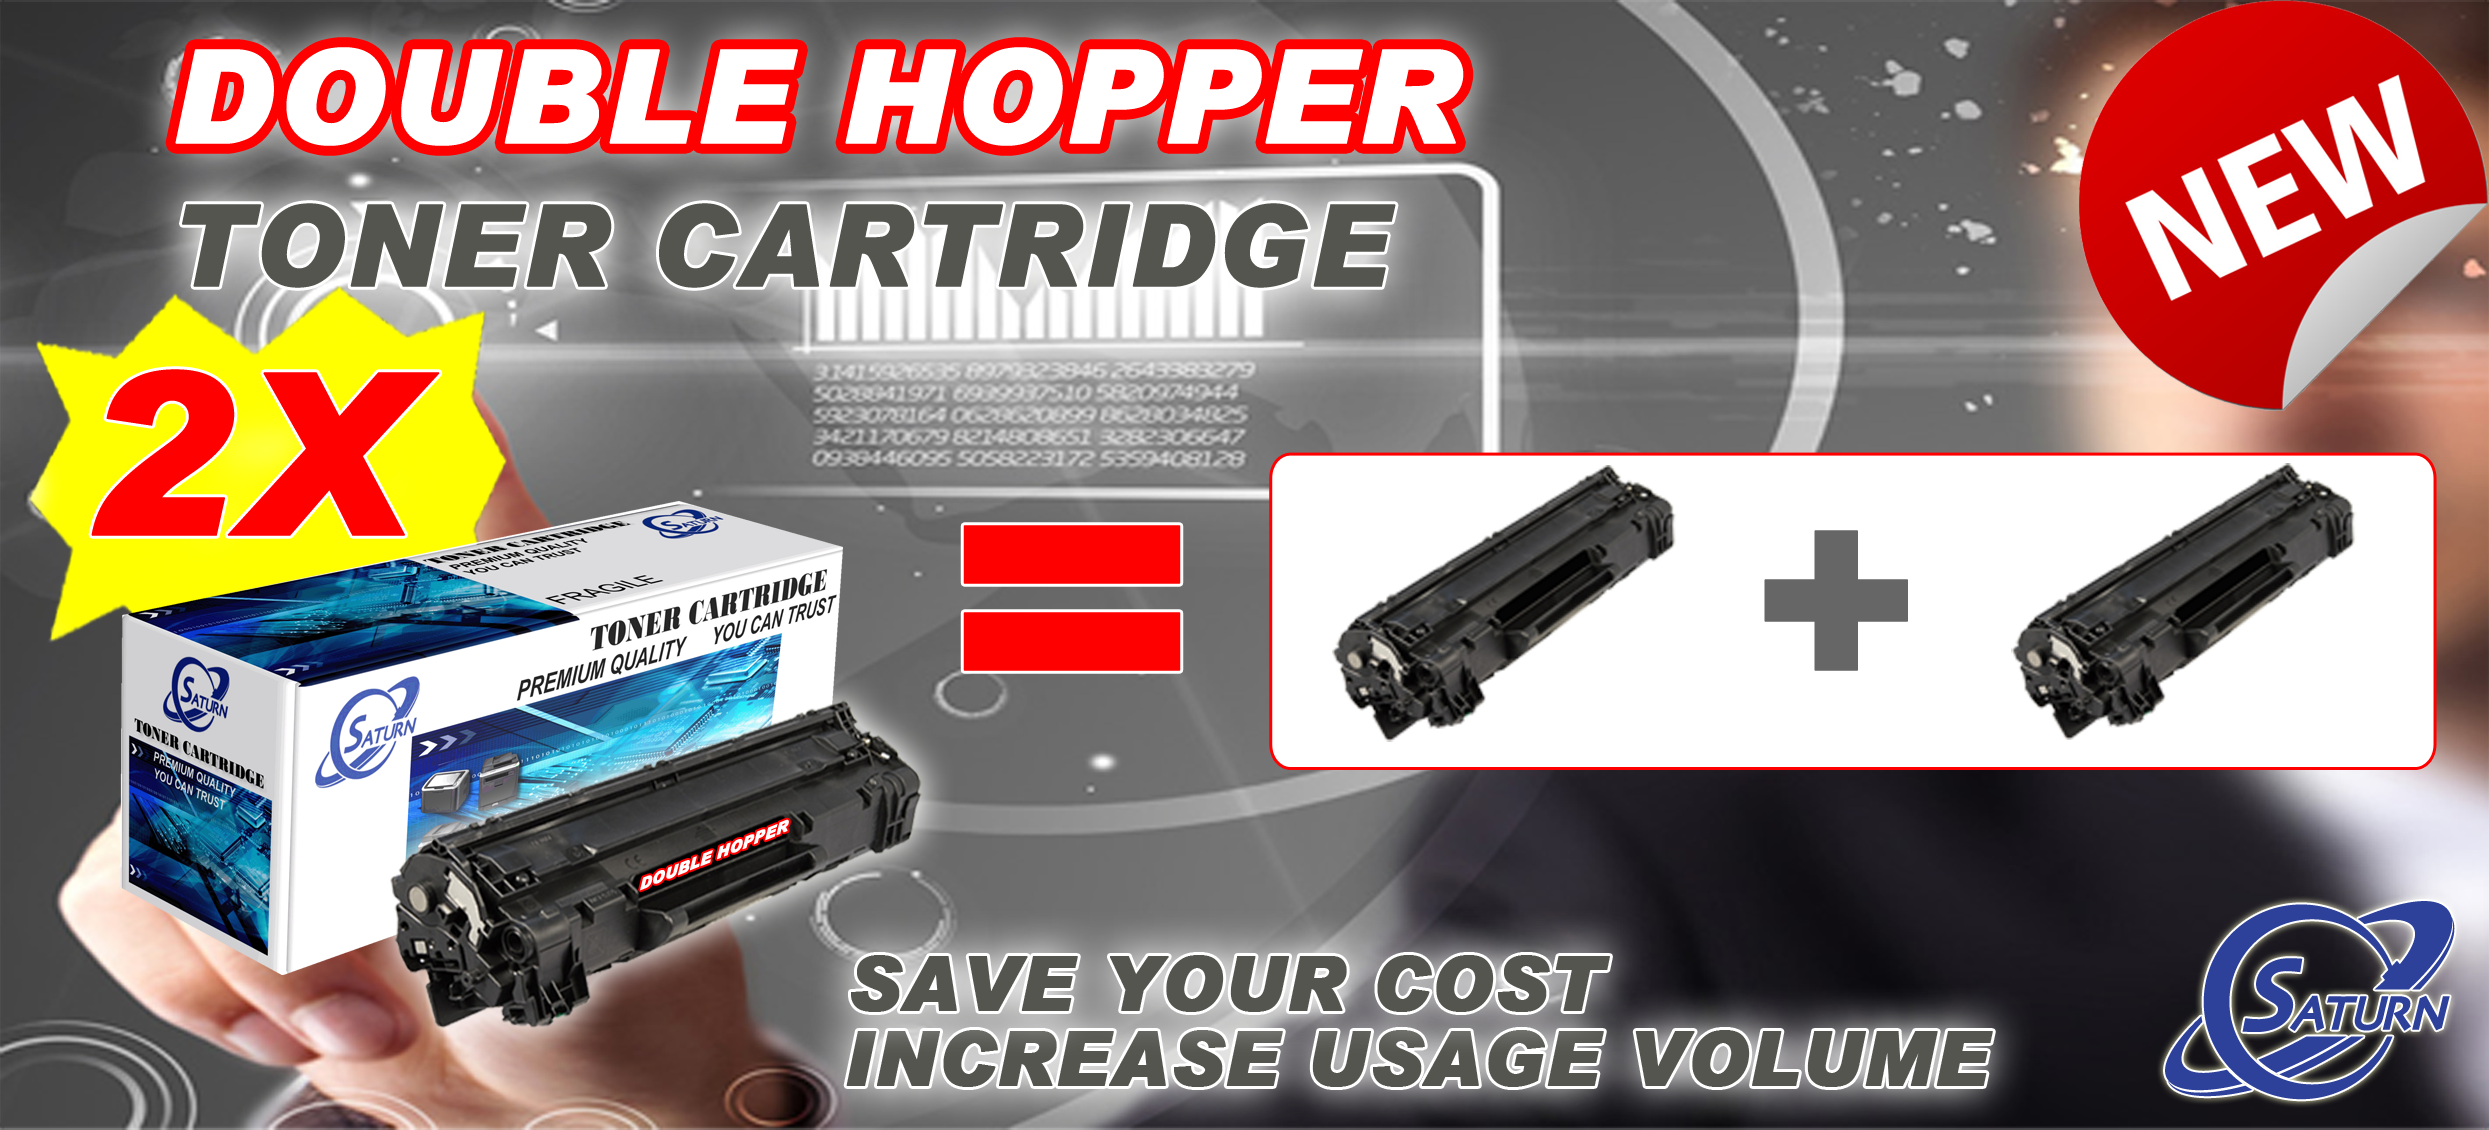 Toner Cartridge 2X